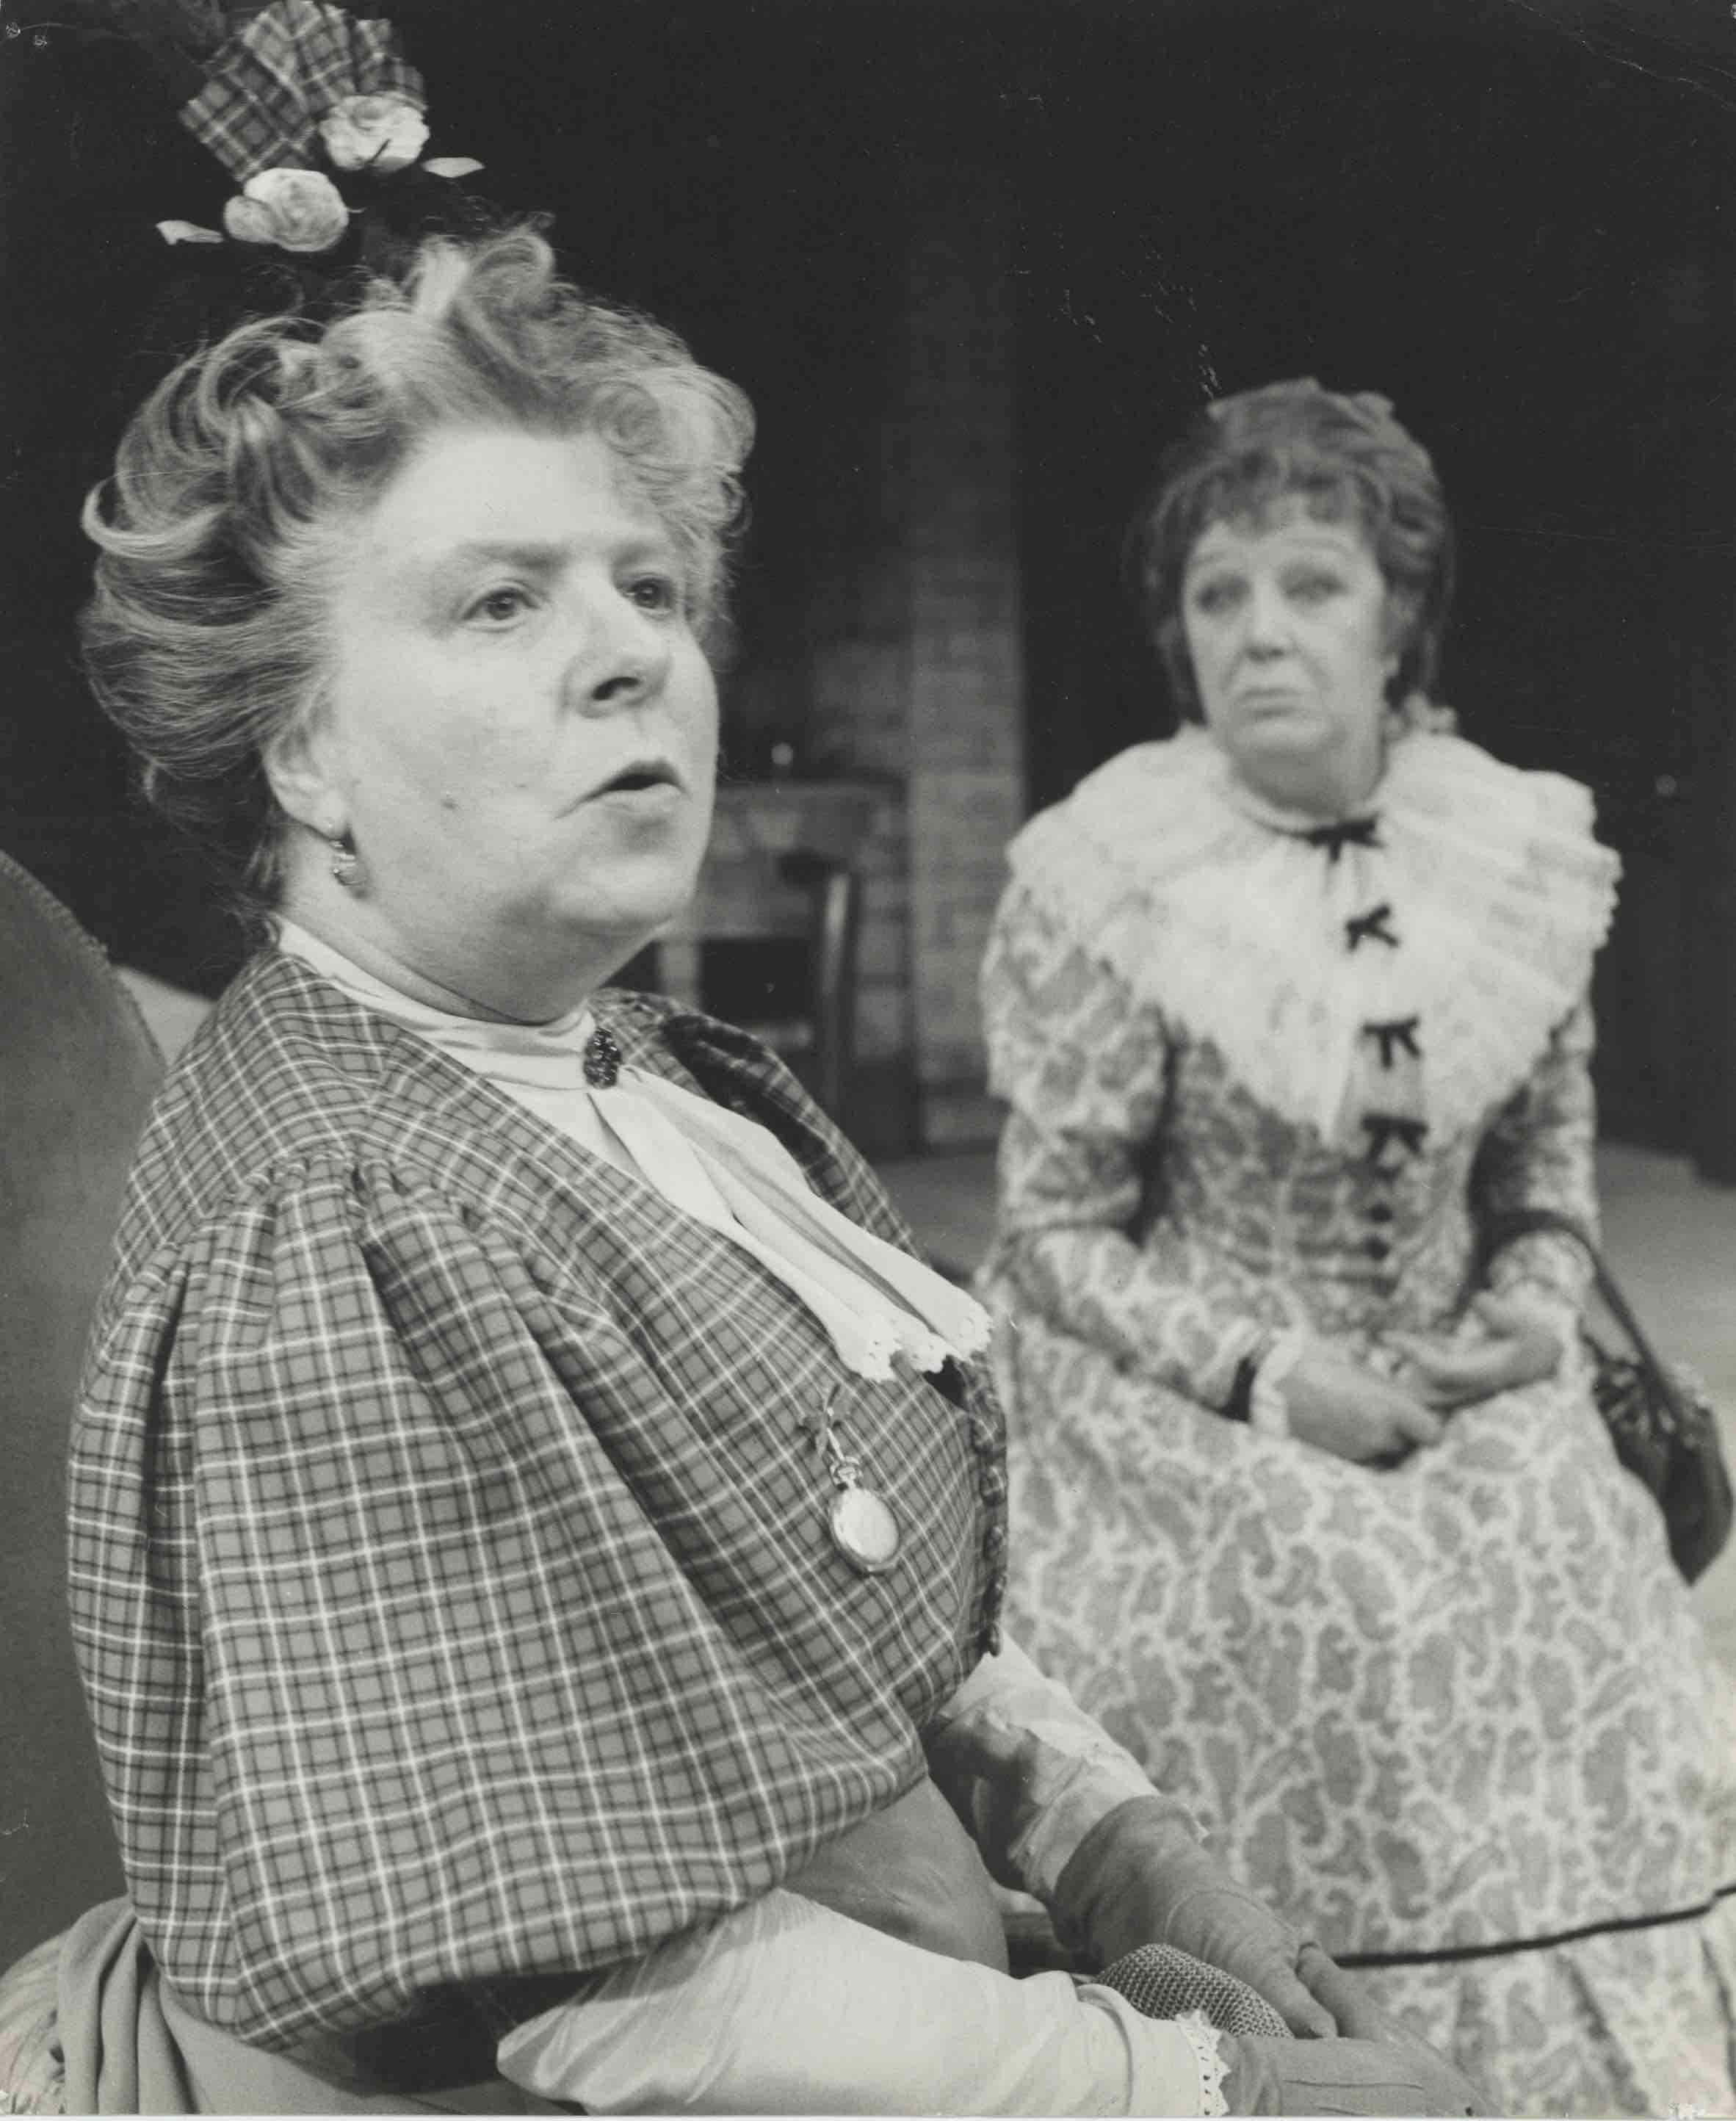 Production photograph - The Farmer's Wife - Irene Handel, Thirza Tapper - Photographer John Timbers - 1967 - WSRO - Dimensions unknown